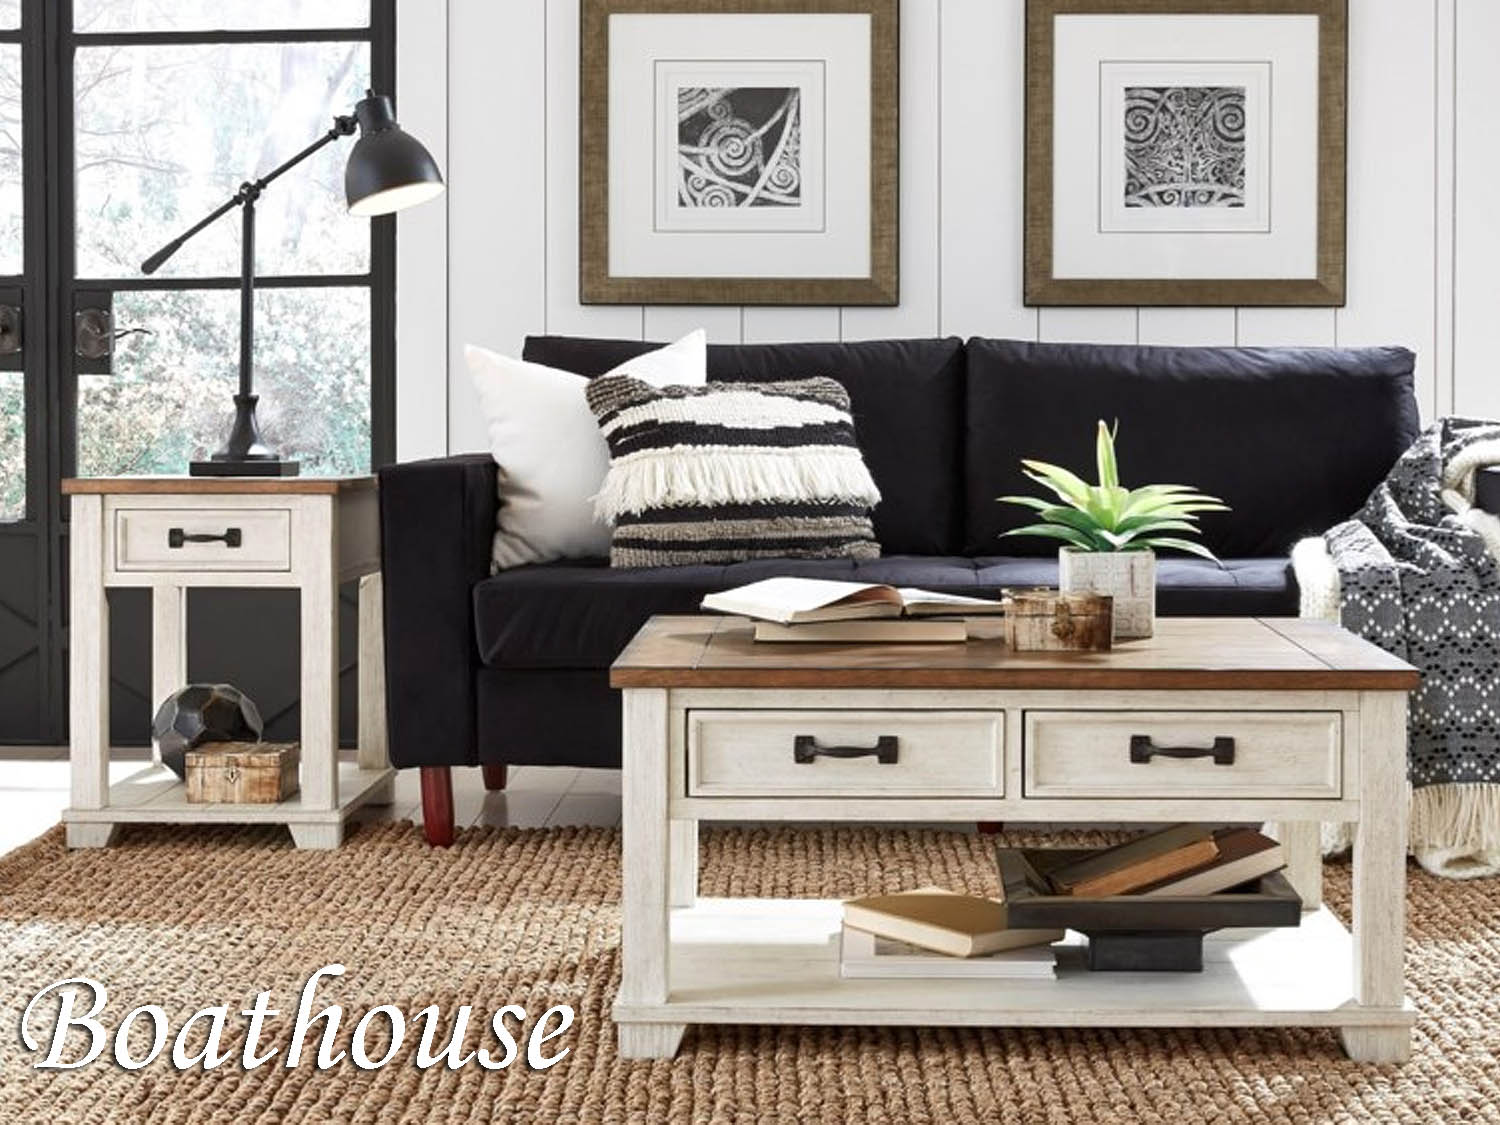 Barbo's Furniture, Boathouse, Living room, Family Room, Den, Occasional, Cape Cod, Coastal, Seaside, Transitional, Casual, two tone, white, natural, distressed, Cocktail, Coffee, End, Chairside, Sofa, Media, Table, Console